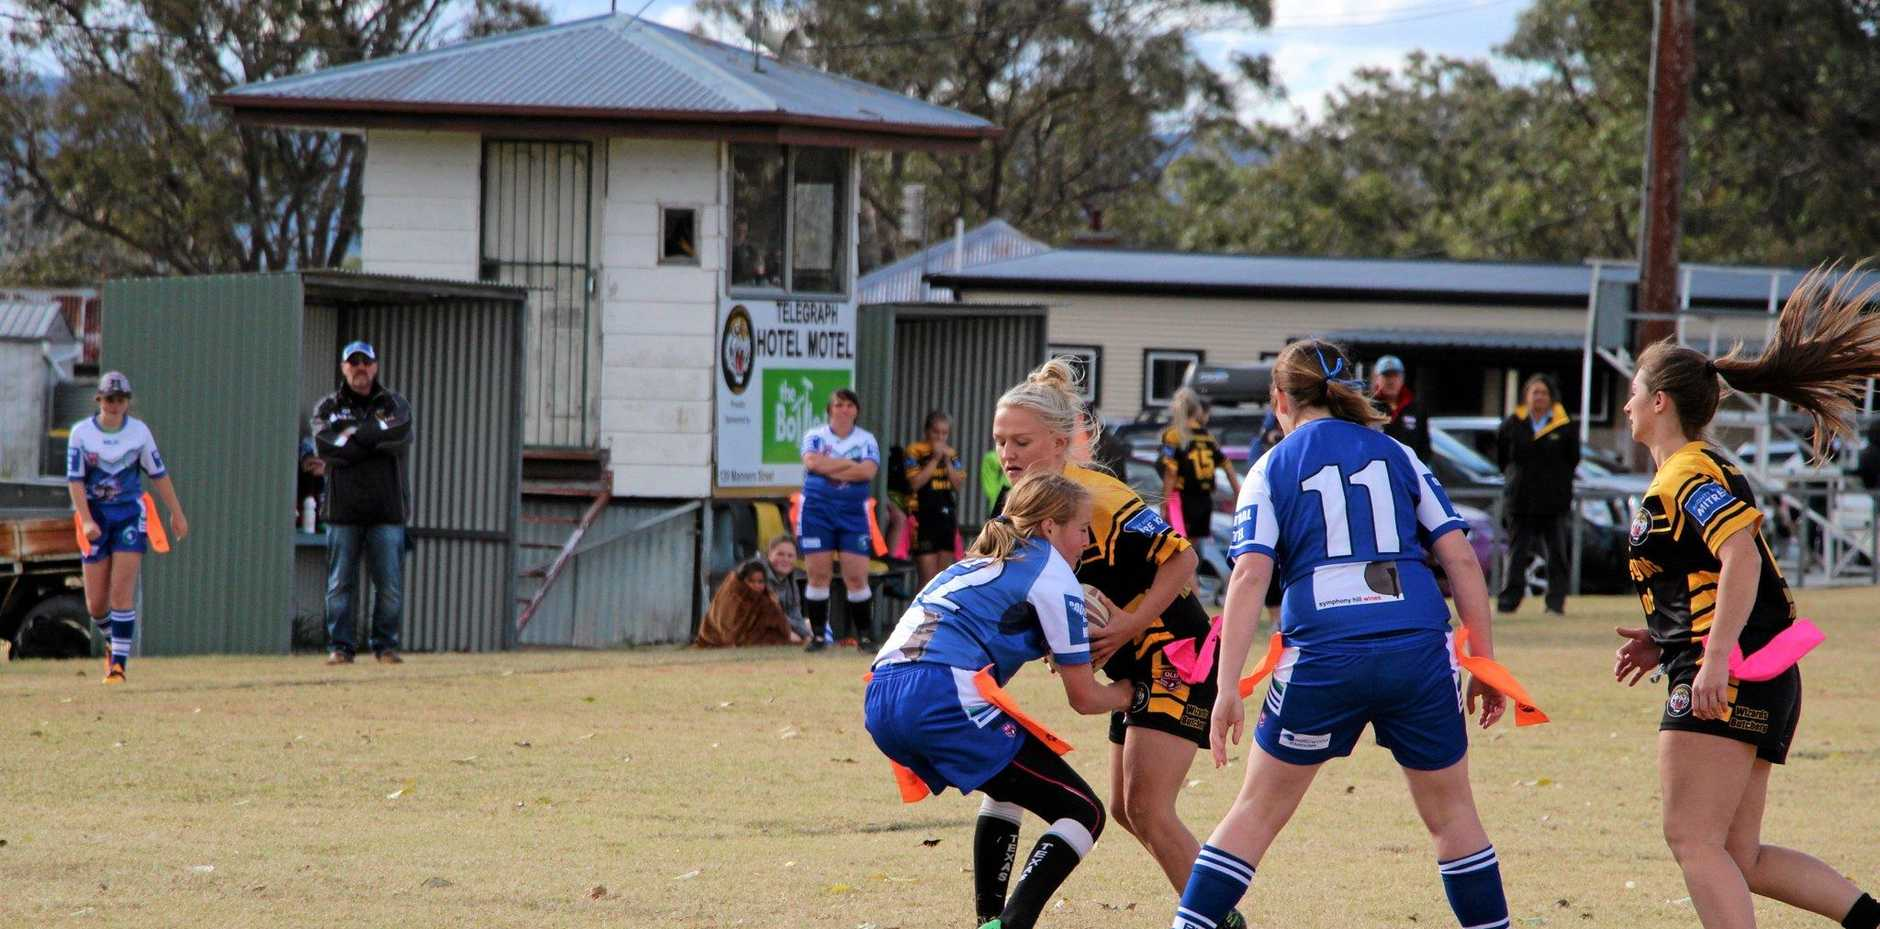 Stanthorpe/ Texas ladies try to take down a Tenterfield player.